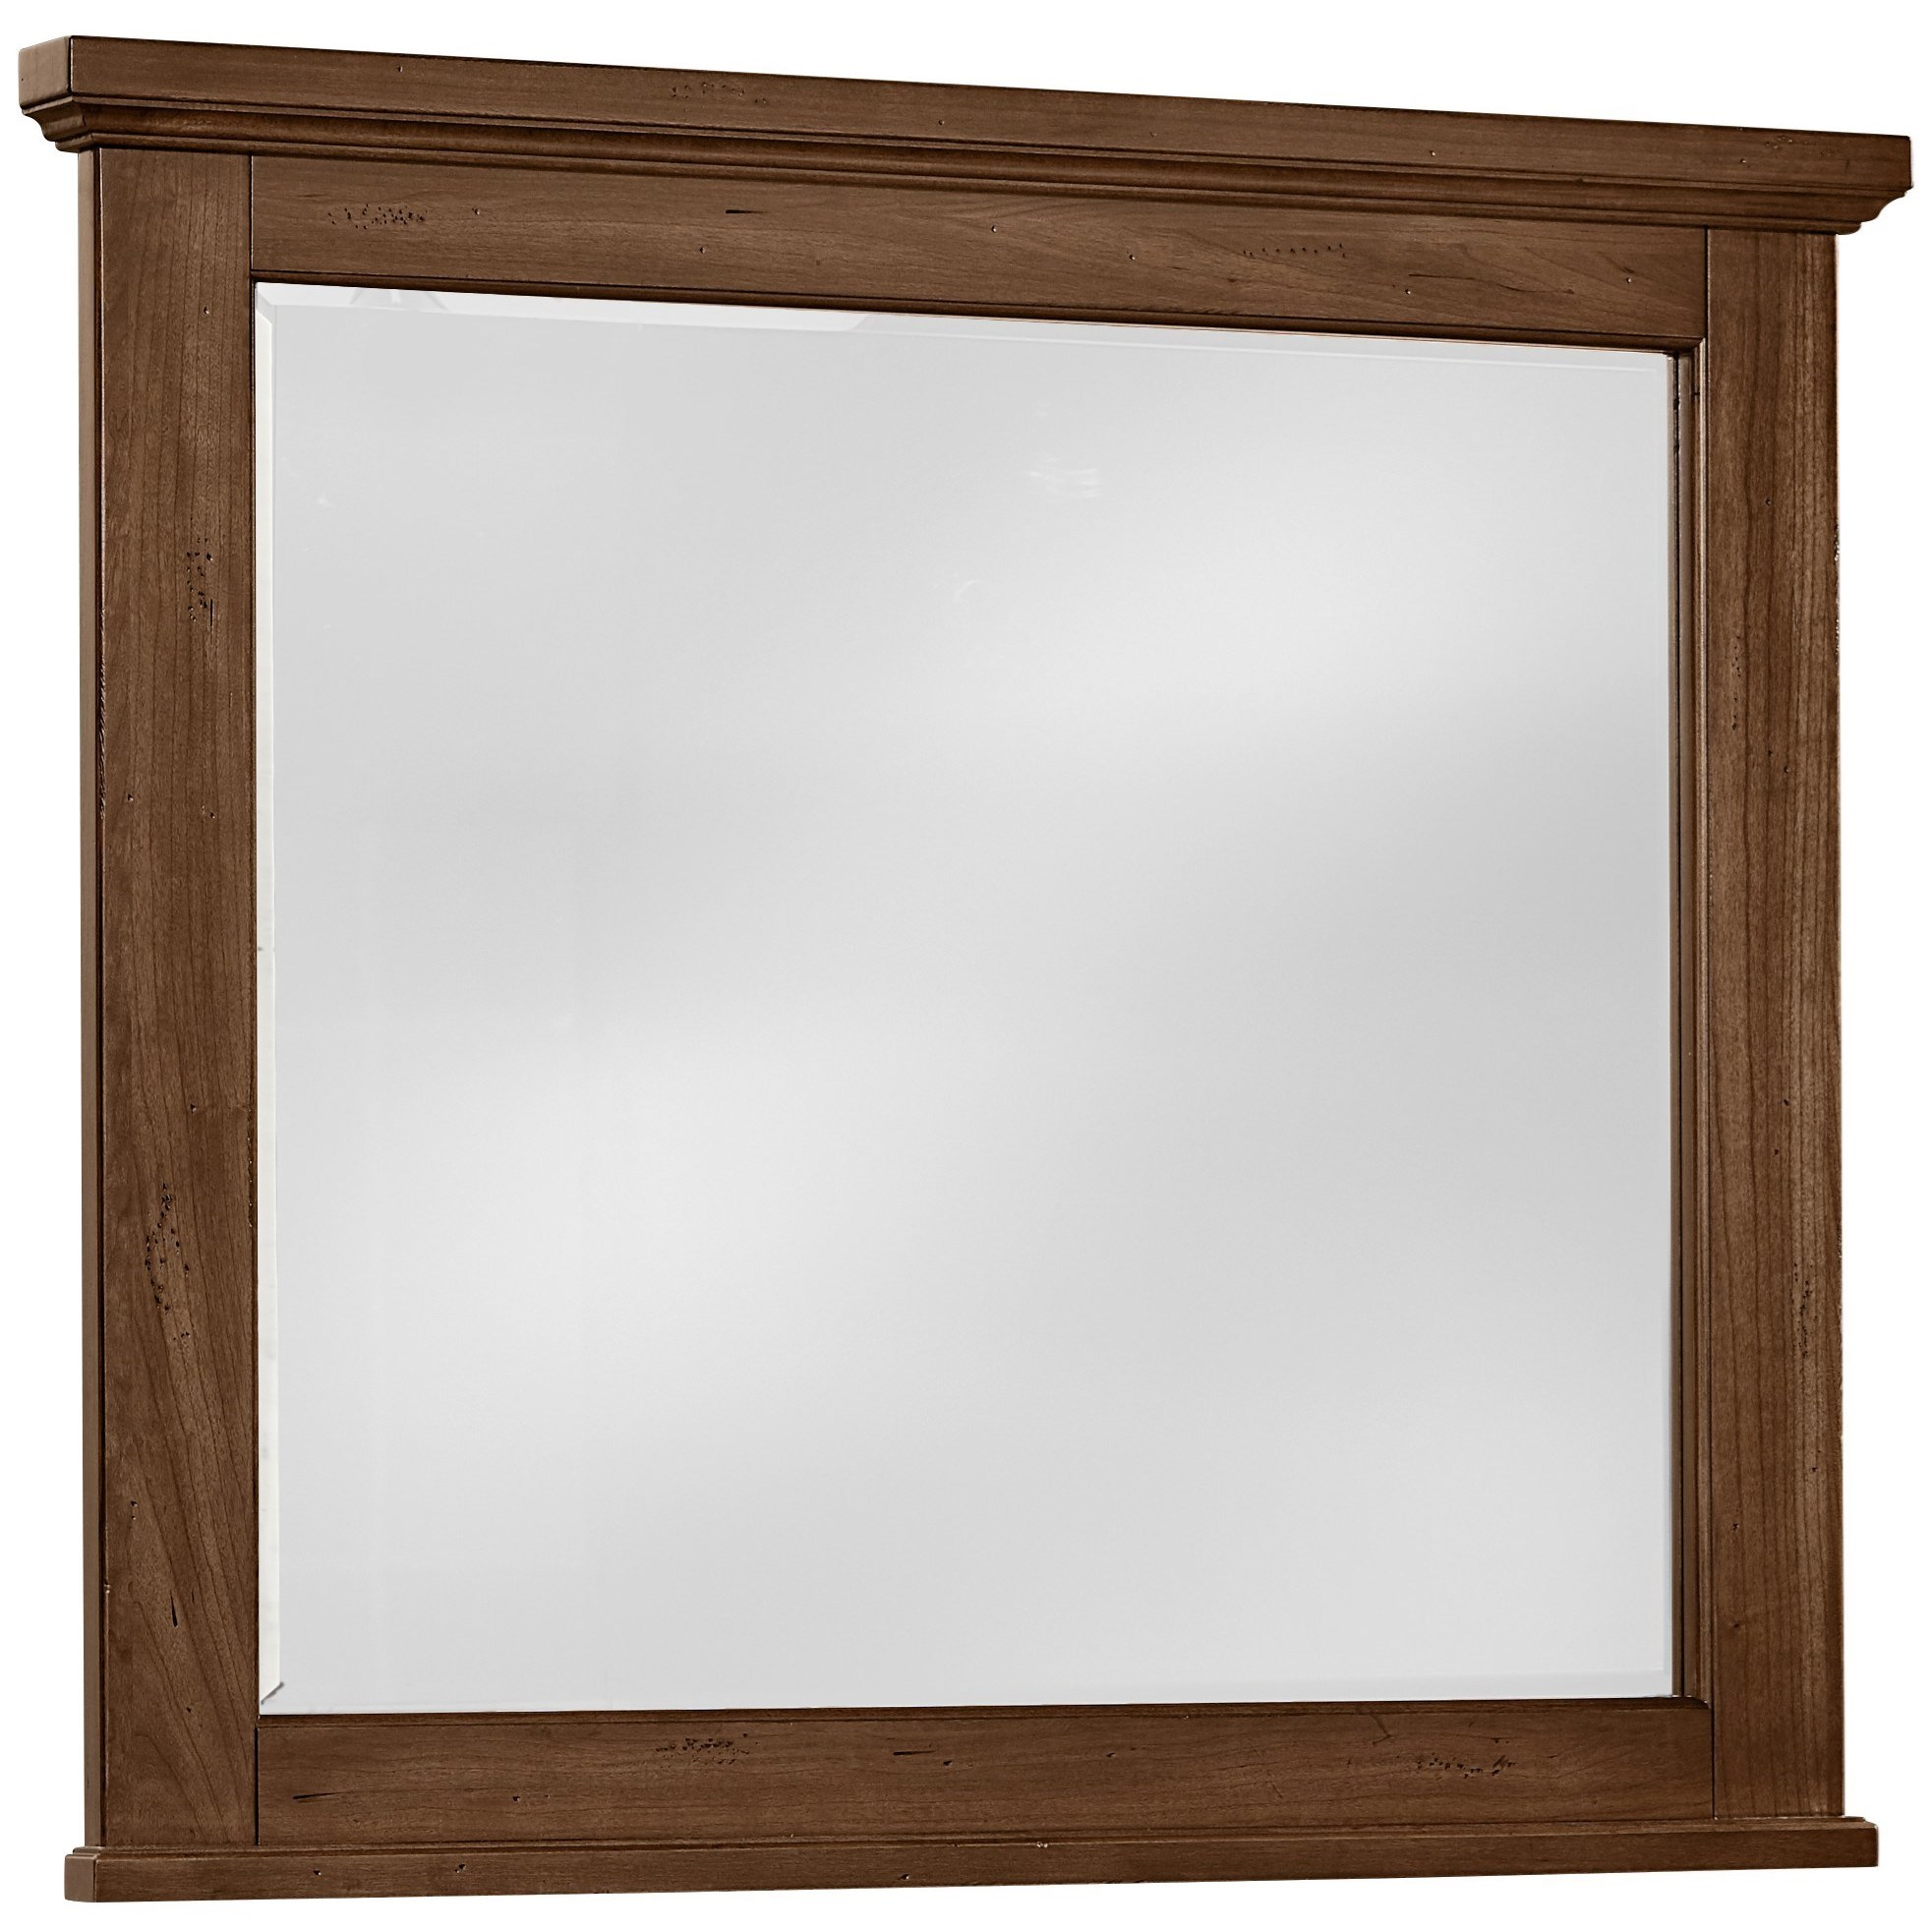 Vaughan Bassett American Cherry Landscape Mirror - Beveled Glass - Item Number: 415-447